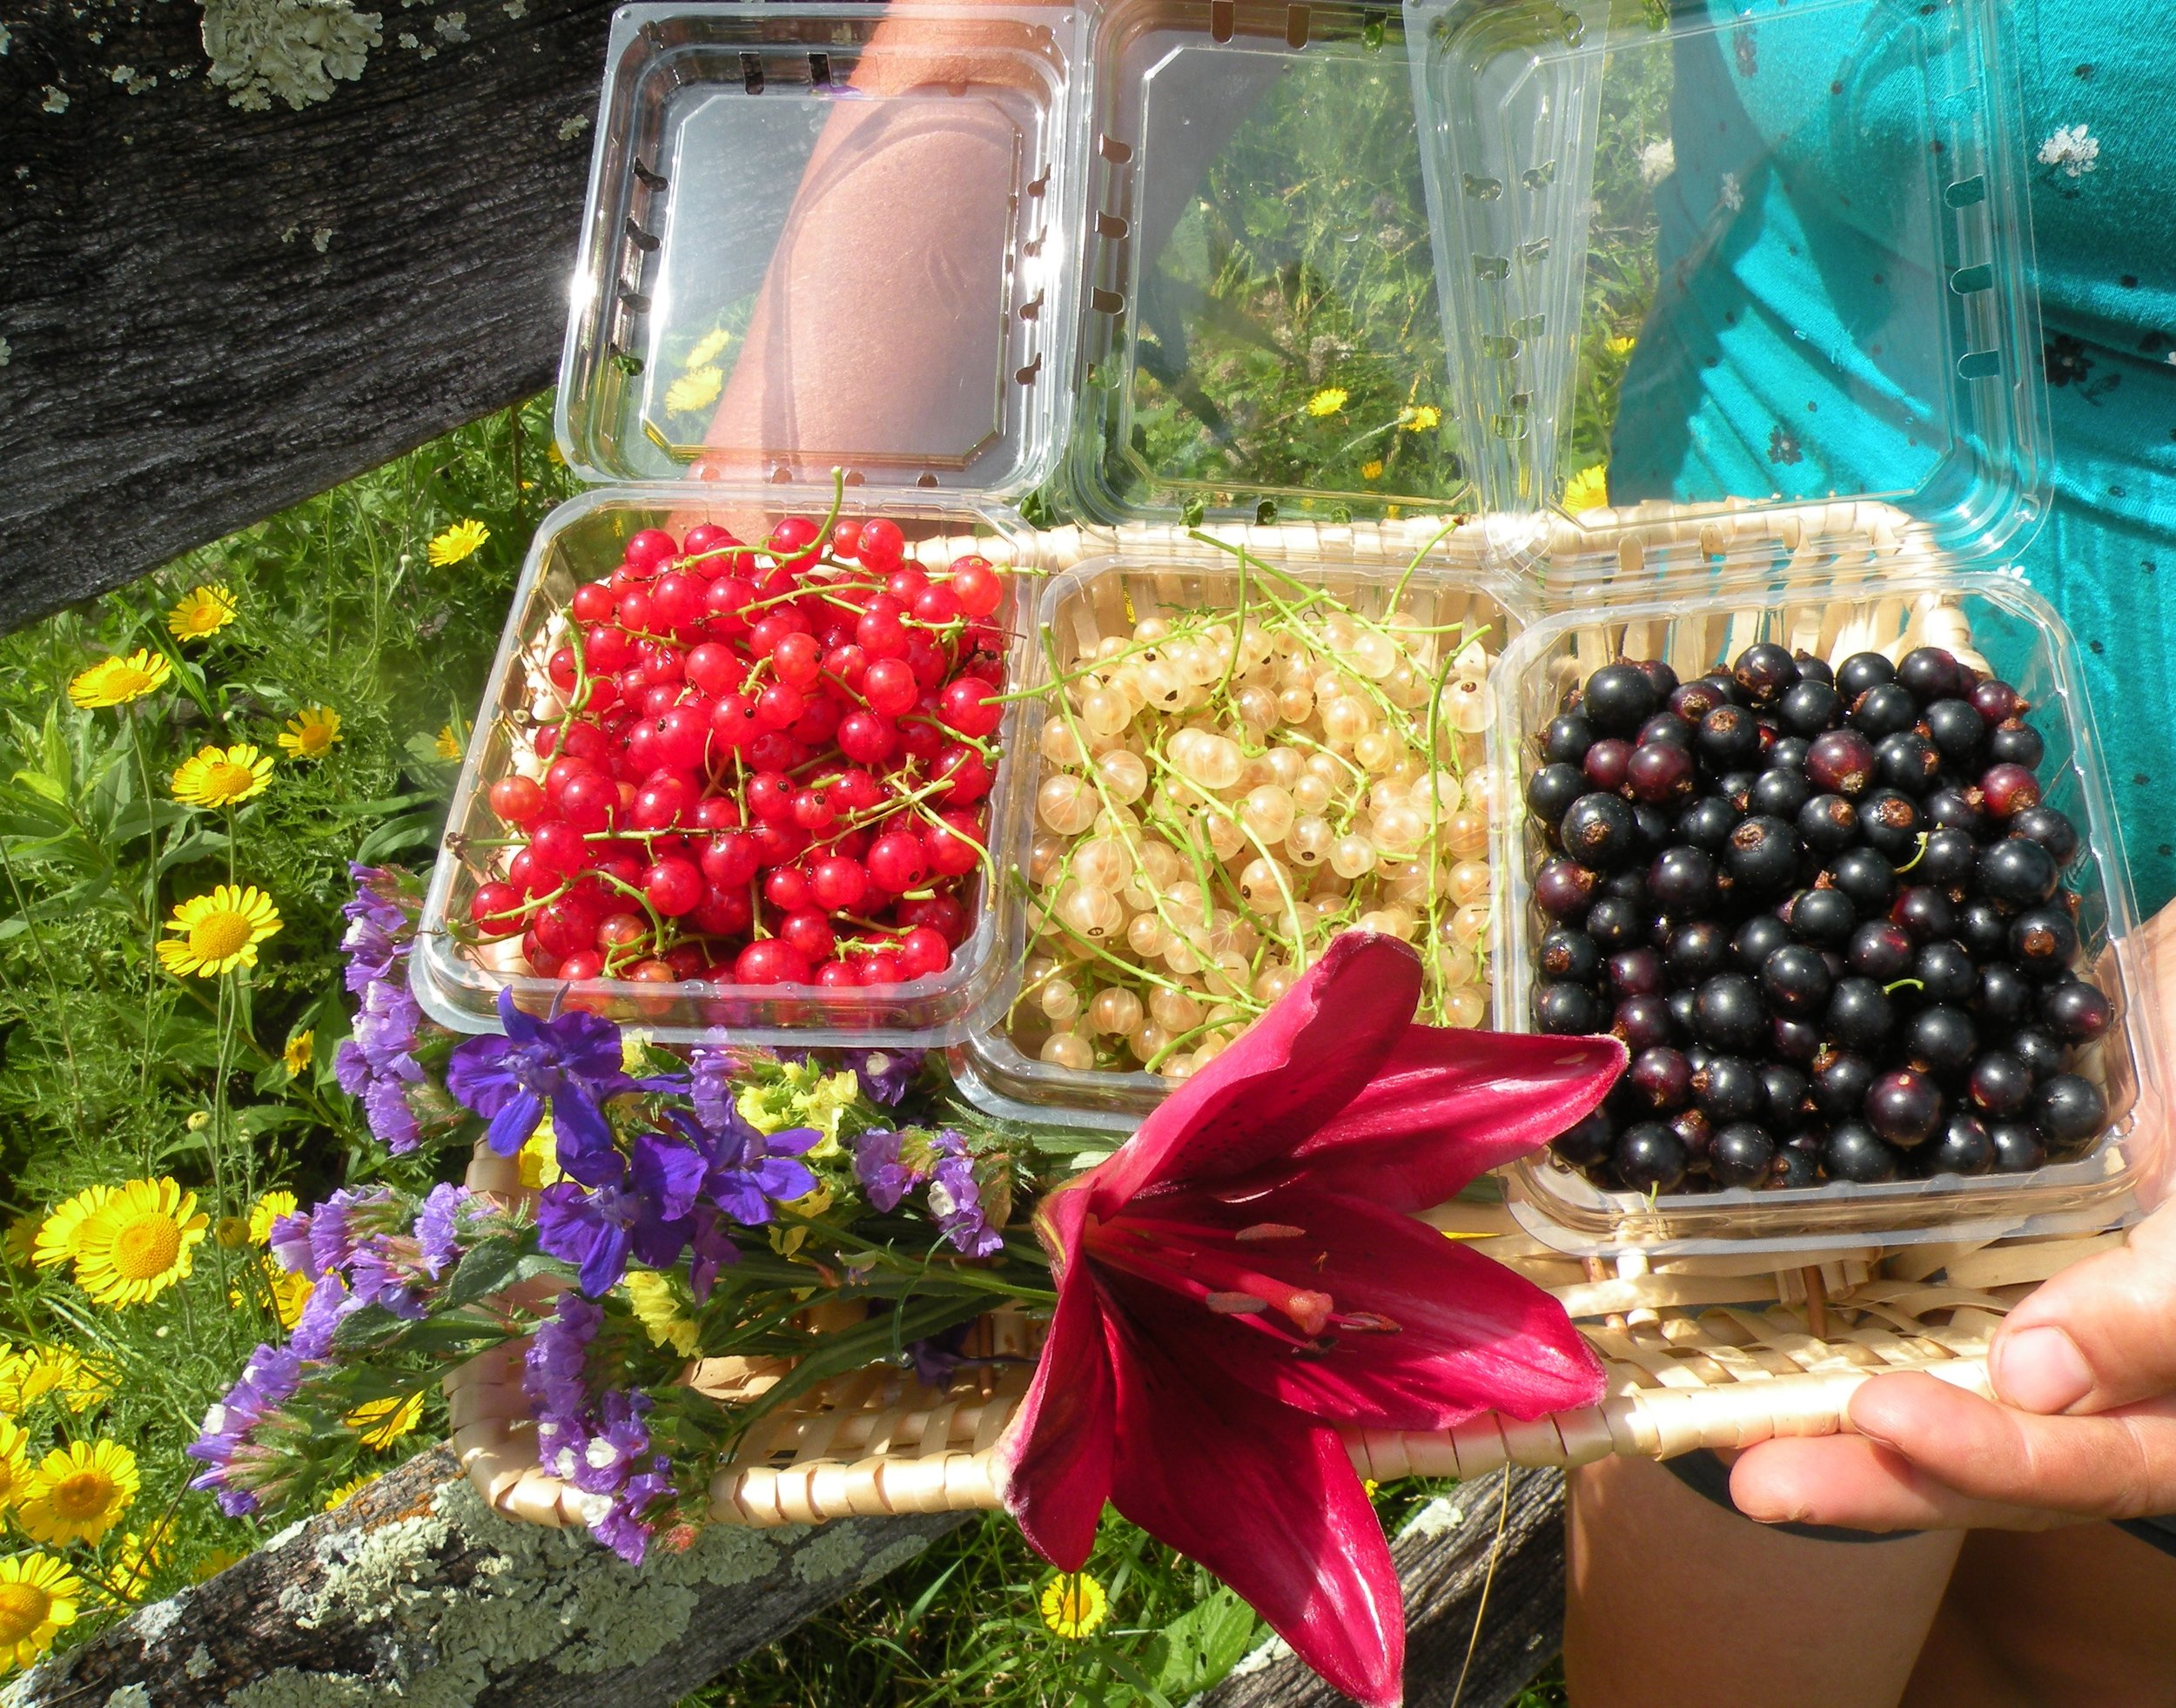 A sampling of red, white, and black currants